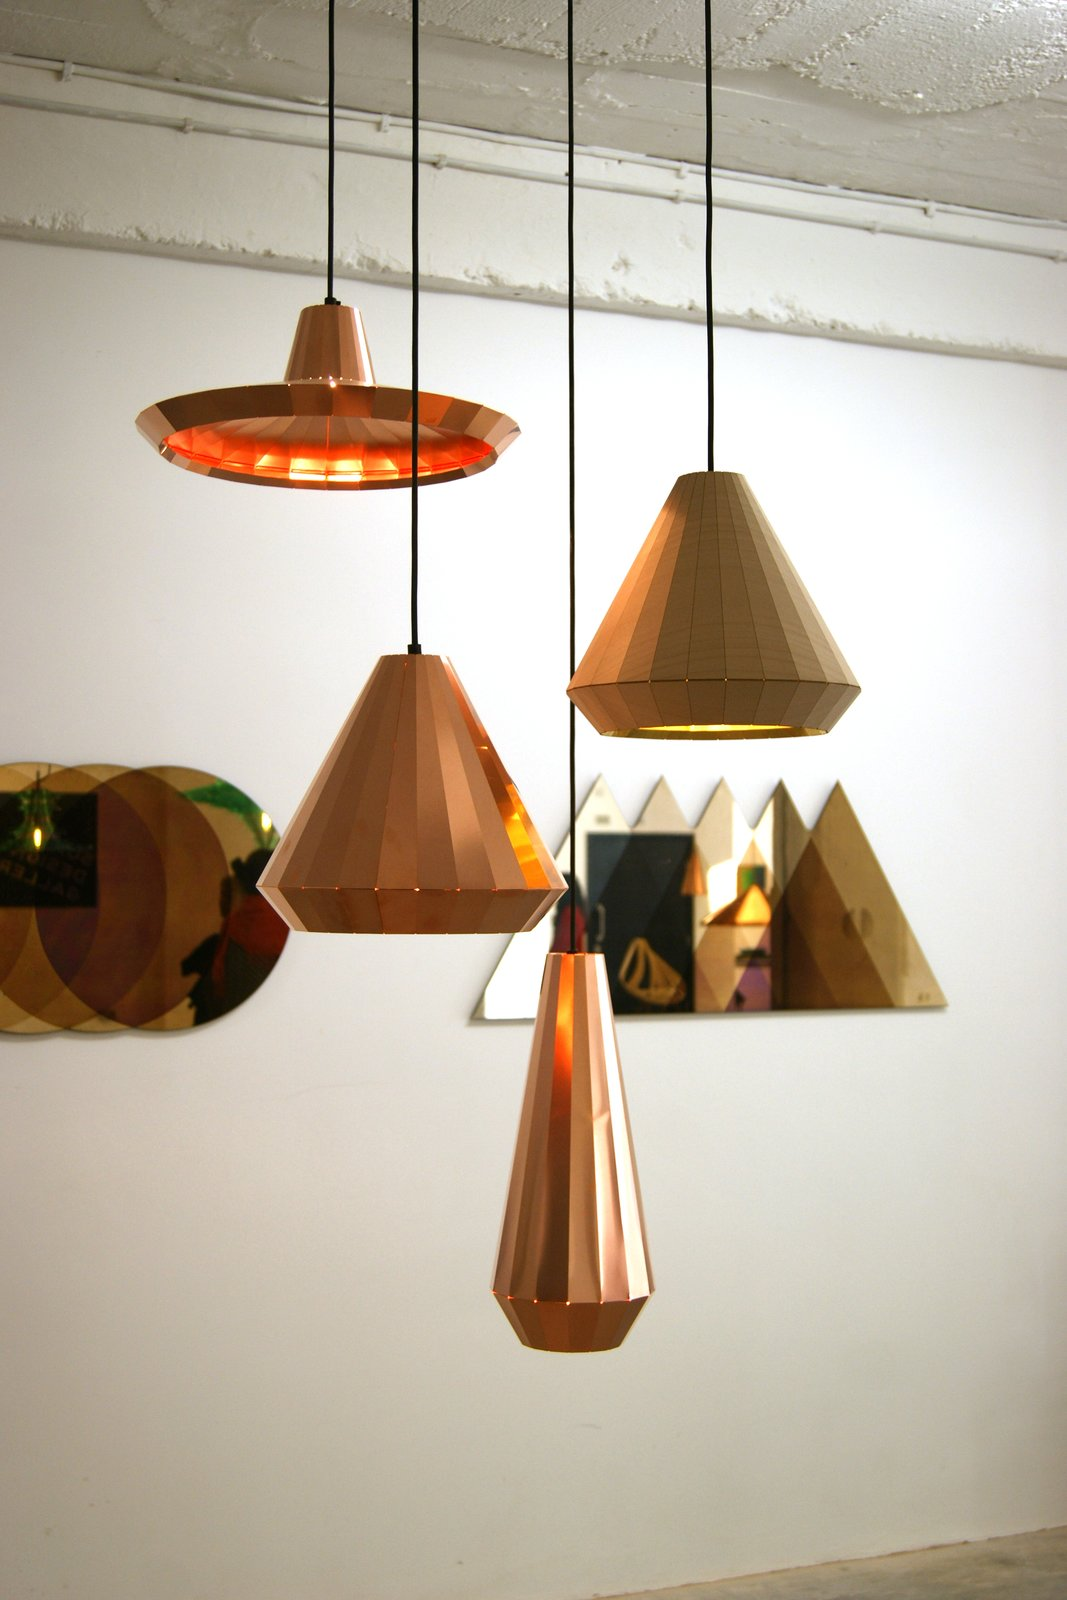 At the TENT London exhibition in east London, Dutch Designer David Derksen exhibited a collection of multi-faceted Copper Lights made from etched and folded copper sheets.  60+ Modern Lighting Solutions by Dwell from Key Trends from 2013 London Design Festival